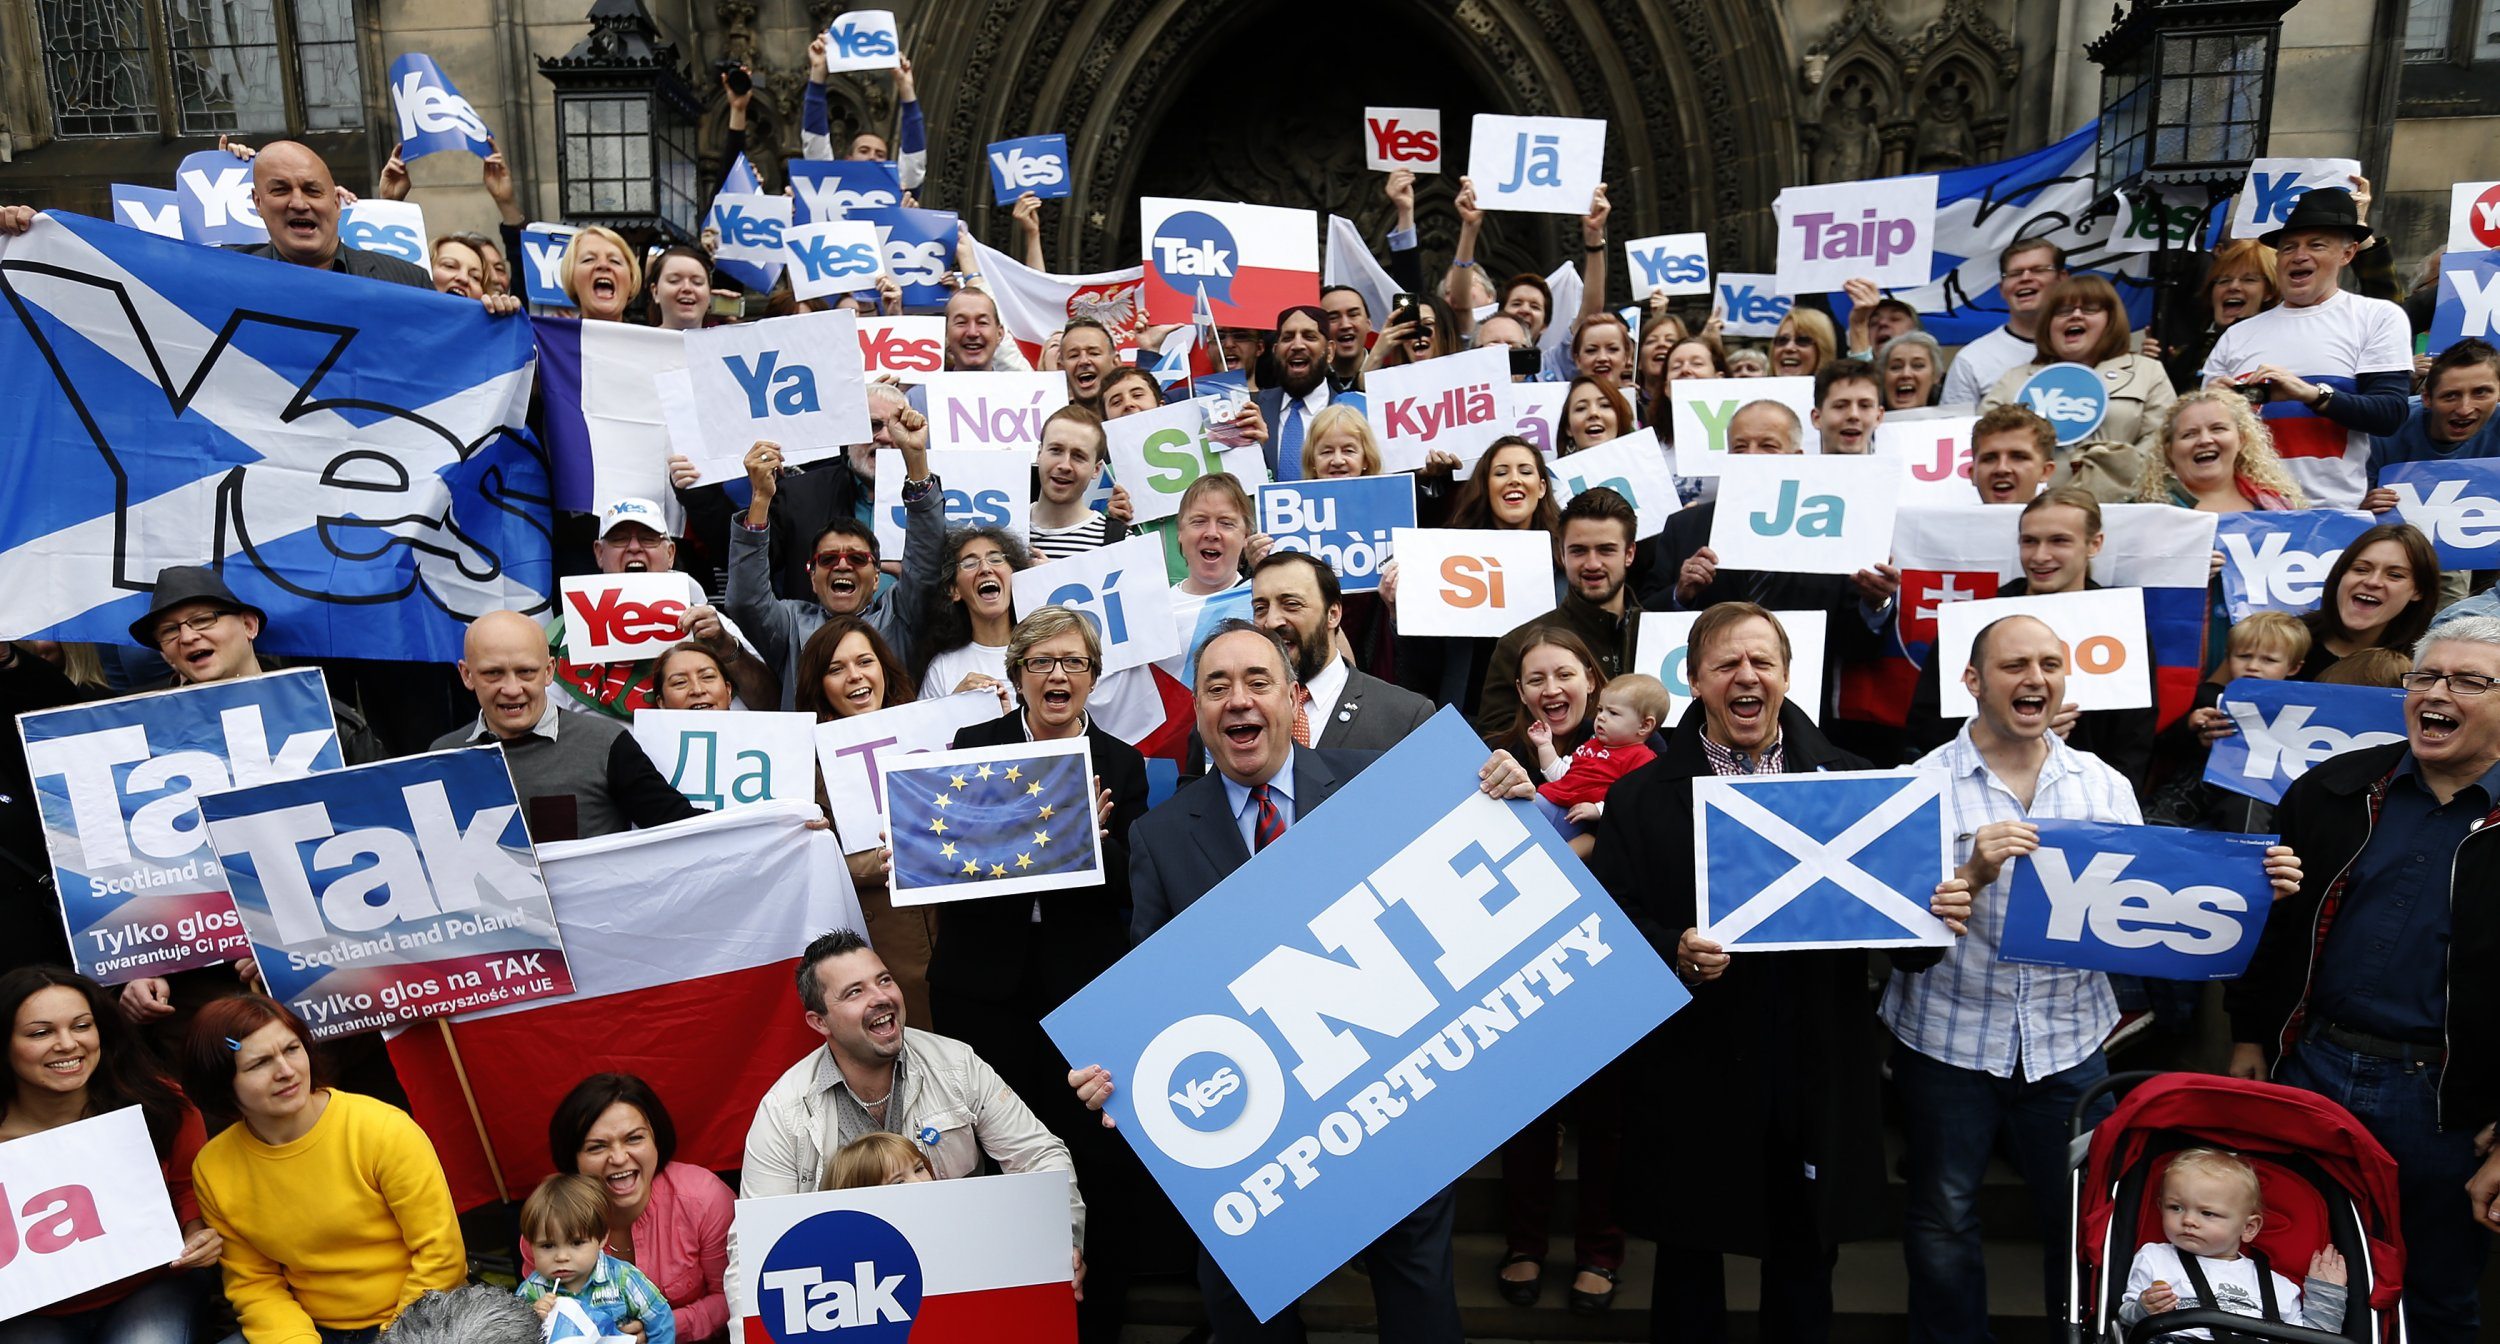 Salmond and Yes supporters